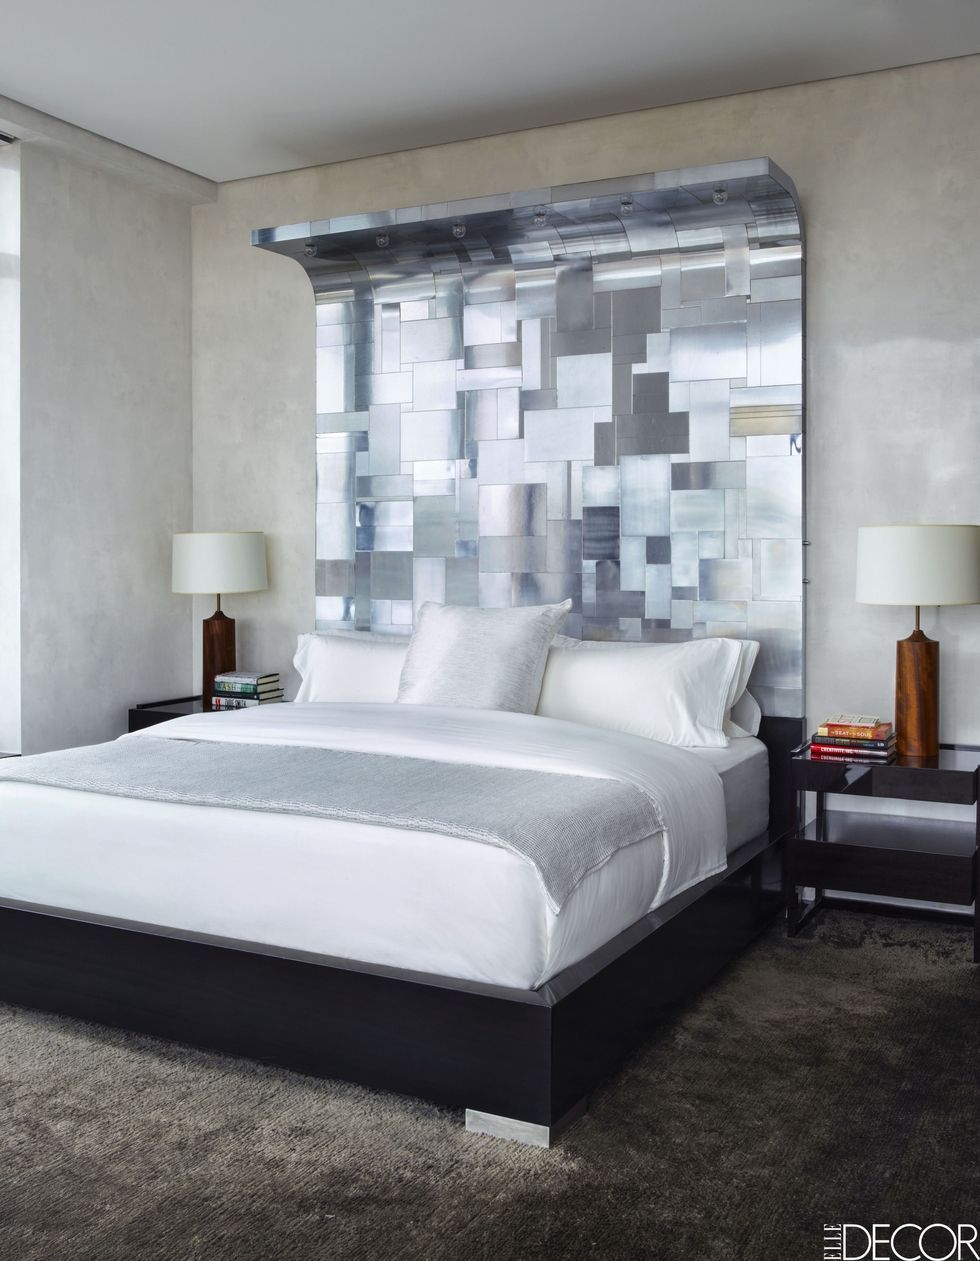 30 Inspiring Modern Bedroom Ideas Best Modern Bedroom Designs with 14 Smart Designs of How to Make Modern Bedroom Decorating